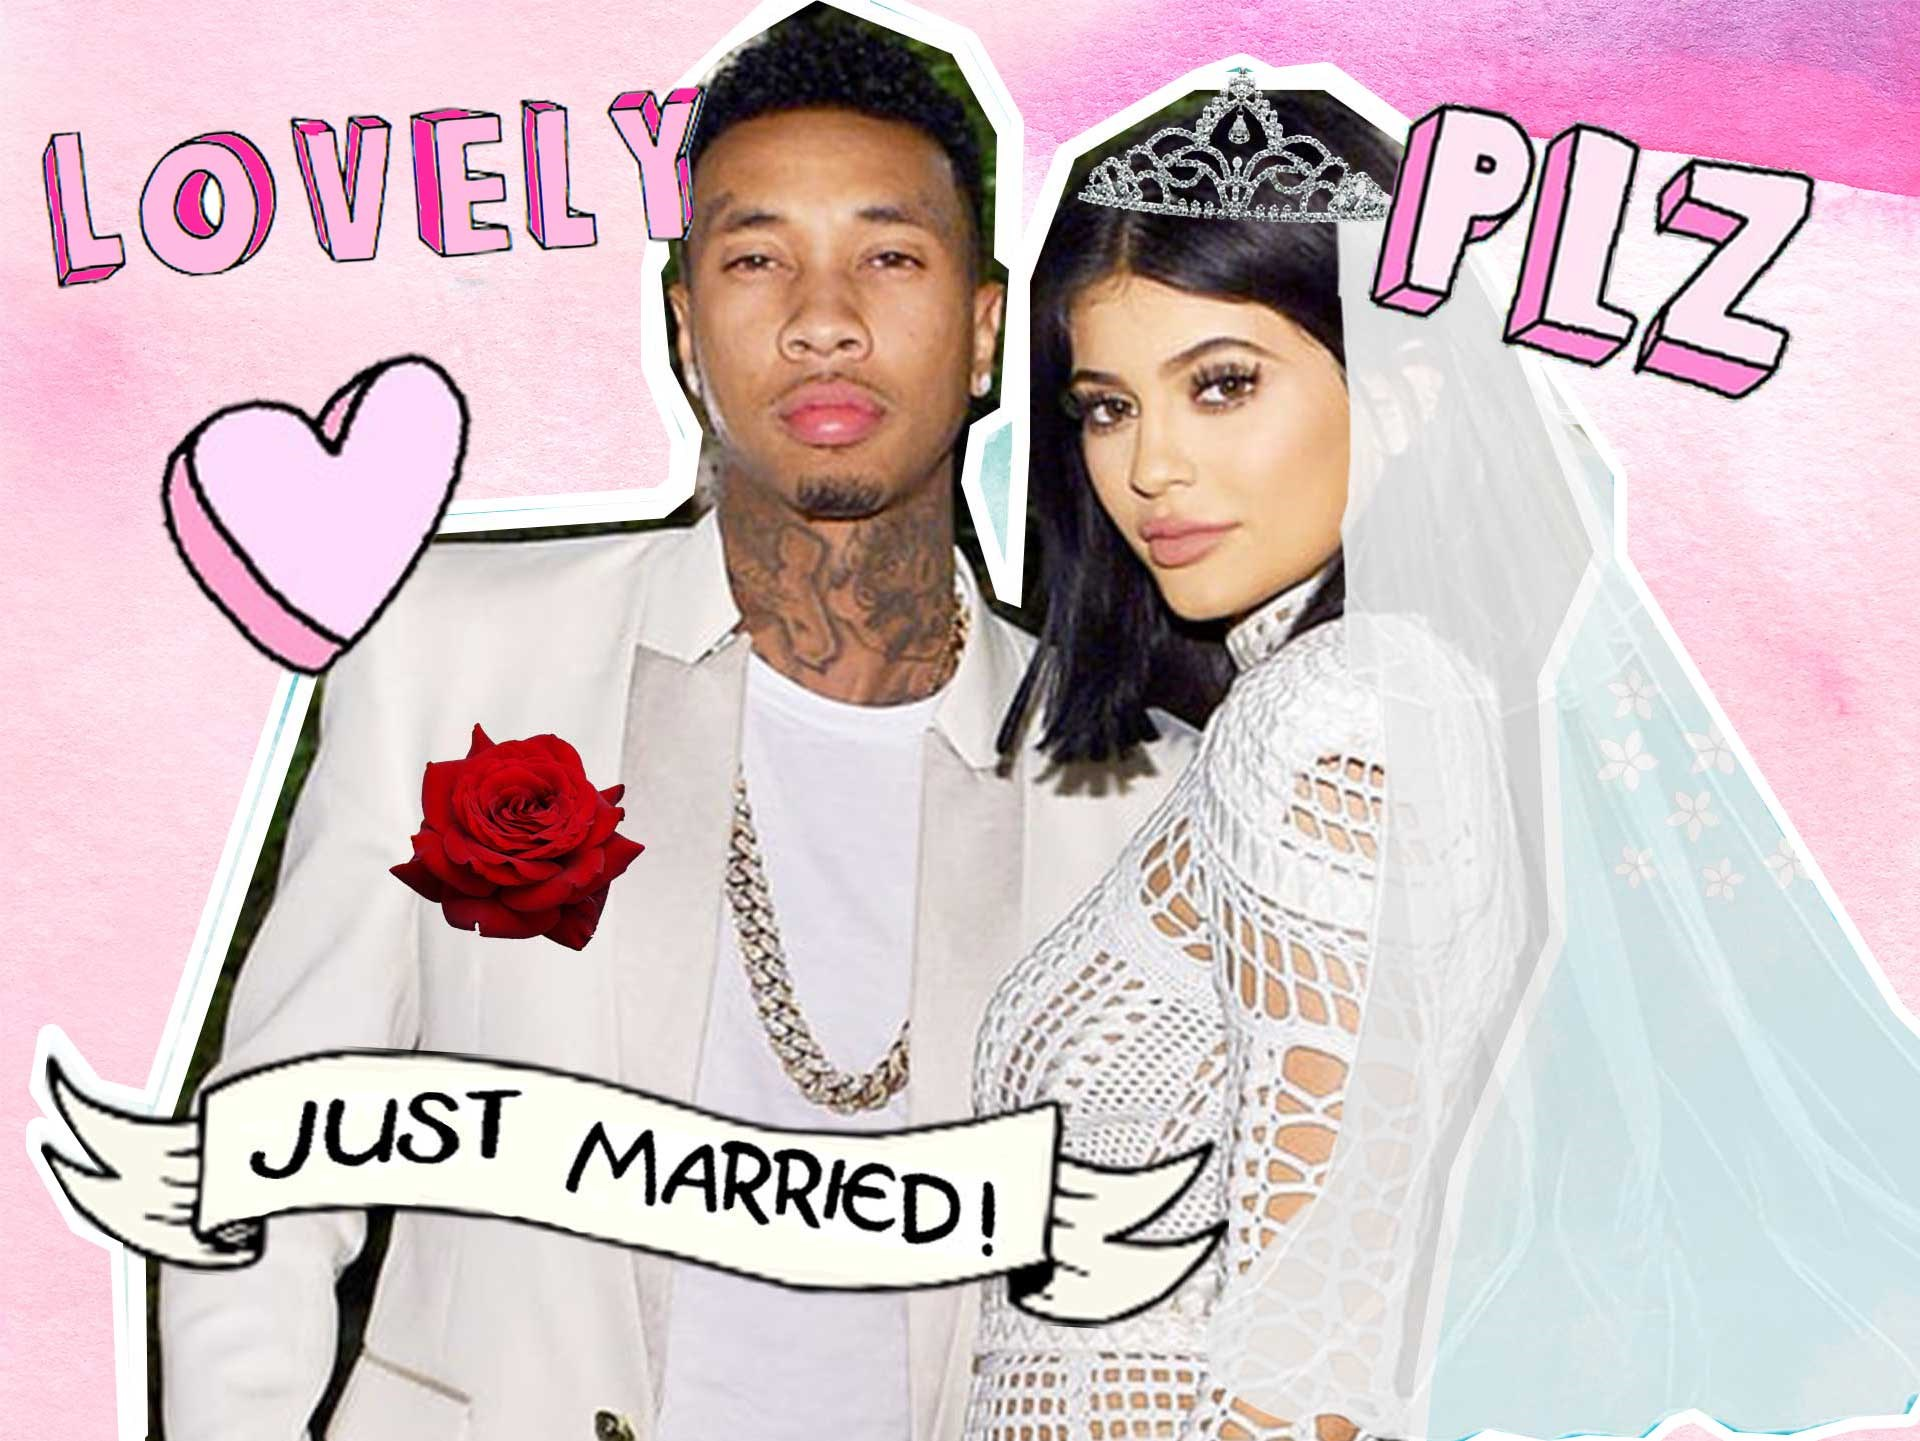 With all the hype surrounding Kylie and Tyga's [~supposed~ engagement/wedding](http://www.dolly.com.au/celebrity/kylie-jenner-married-to-tyga-confirmed-she-is-not-engaged-11993)... we got to thinking just how epic their wedding would actually be. Kylie is basically Kim 2.0, and her wedding was insane in the membrane. So, here's everything we predict to go down at the ceremony of #Kyga.